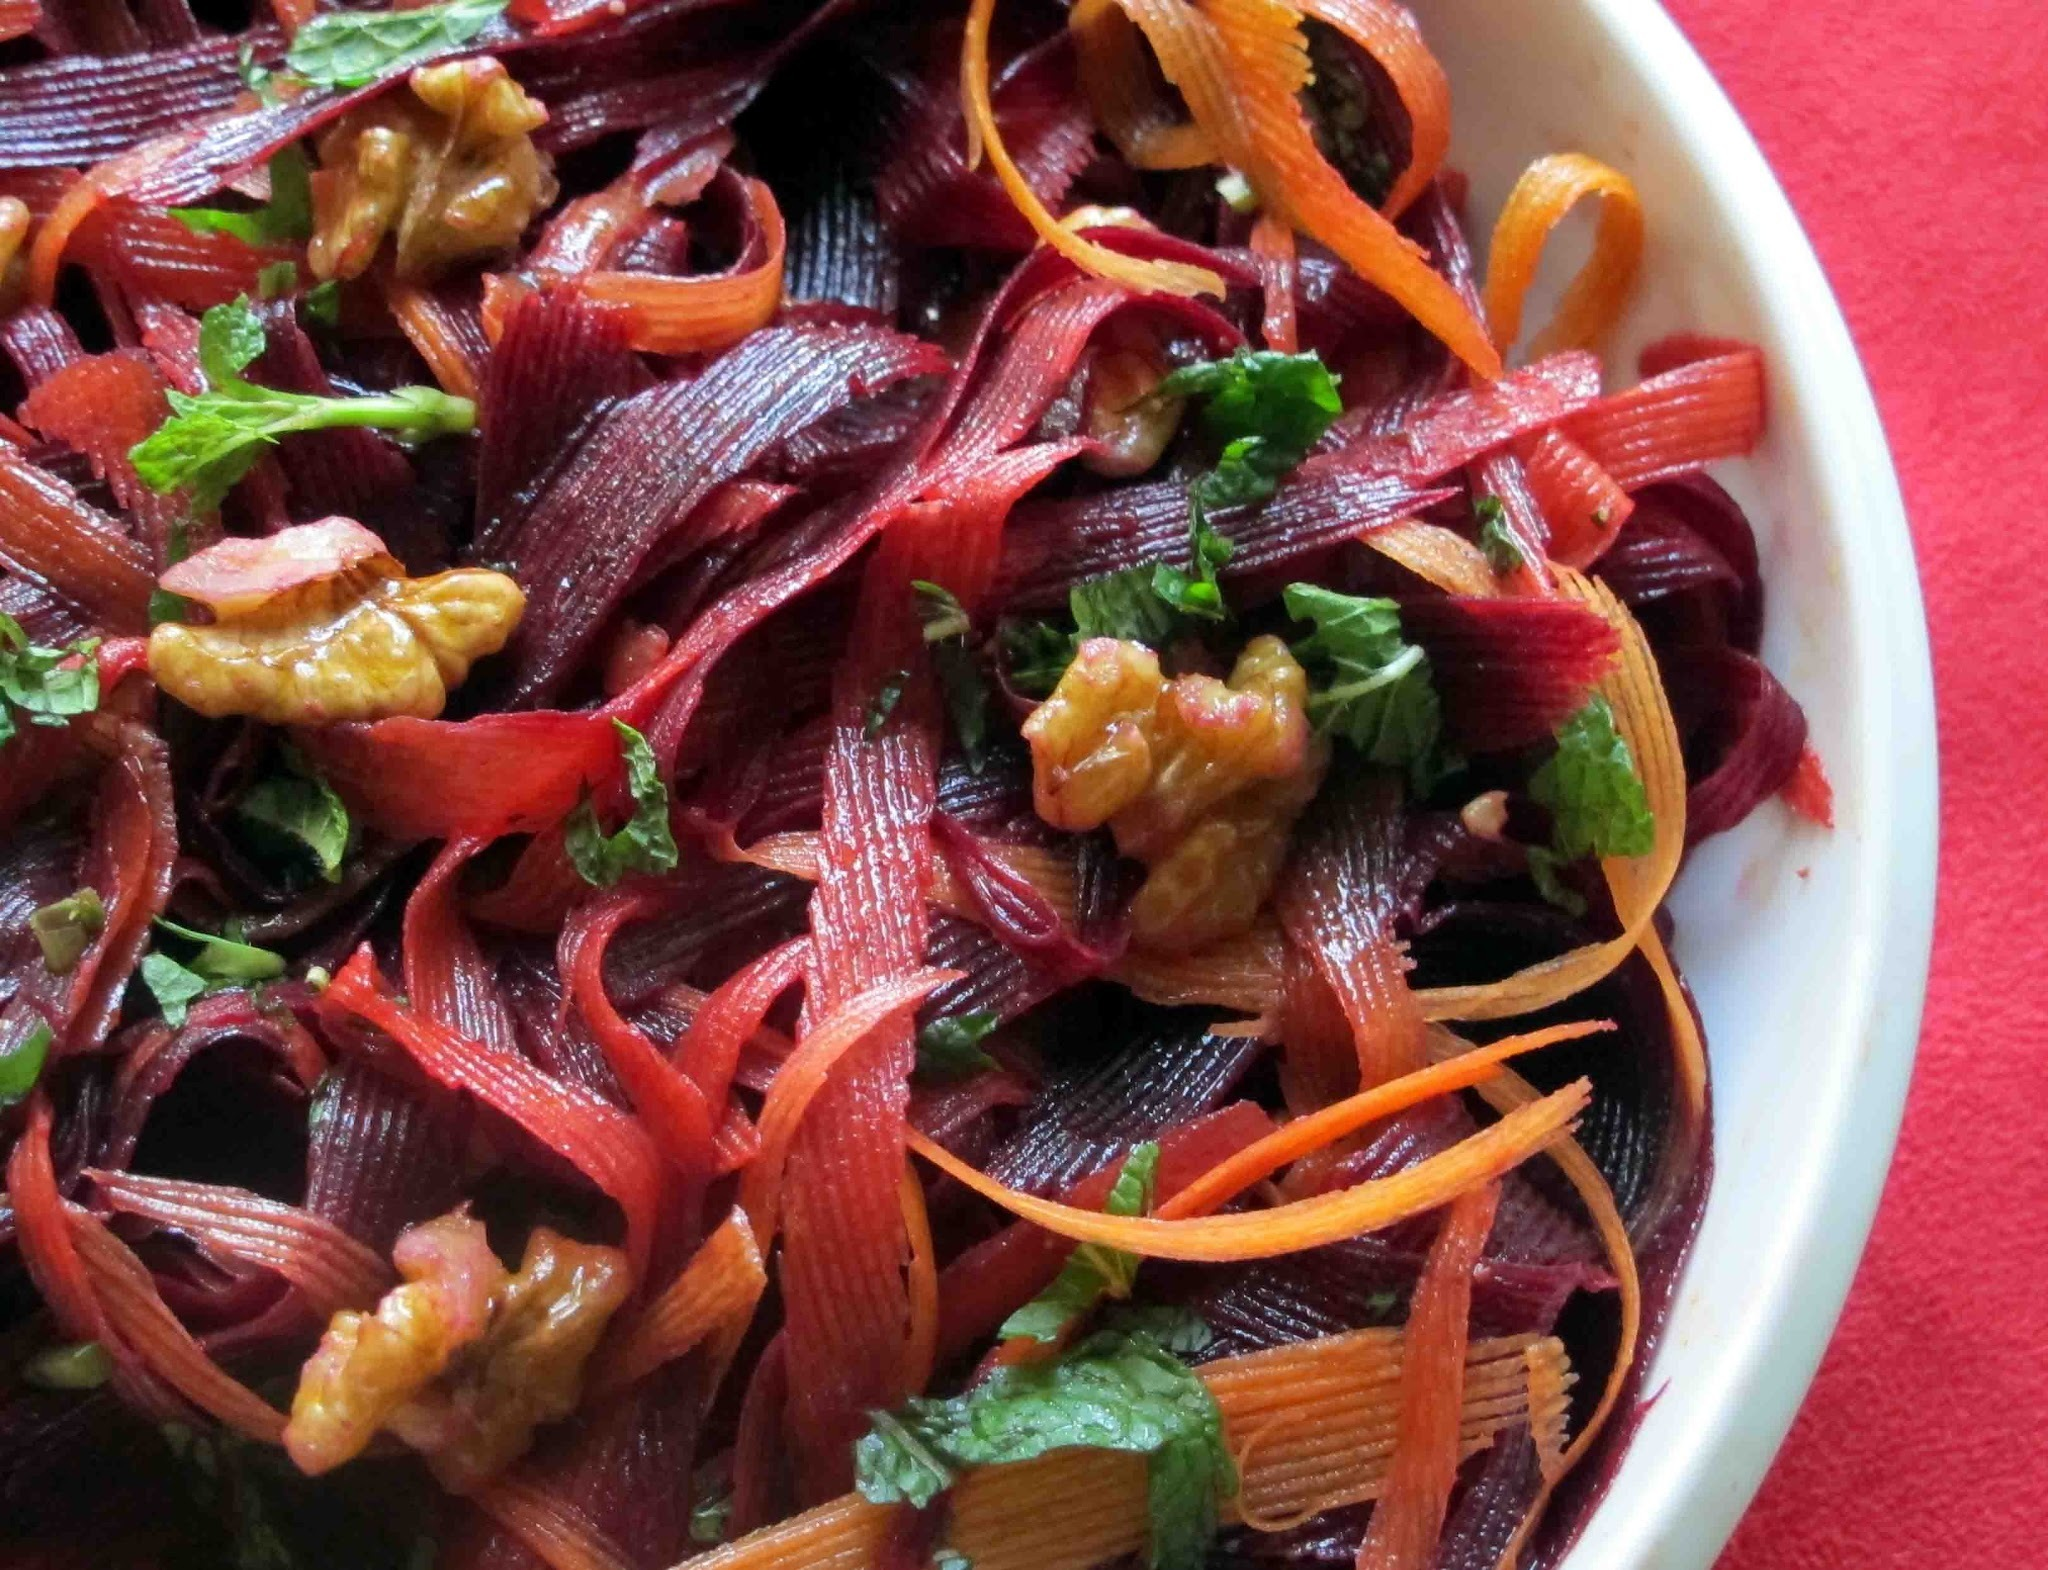 Purple and Orange Carrot Salad with a Walnut Oil Dressing